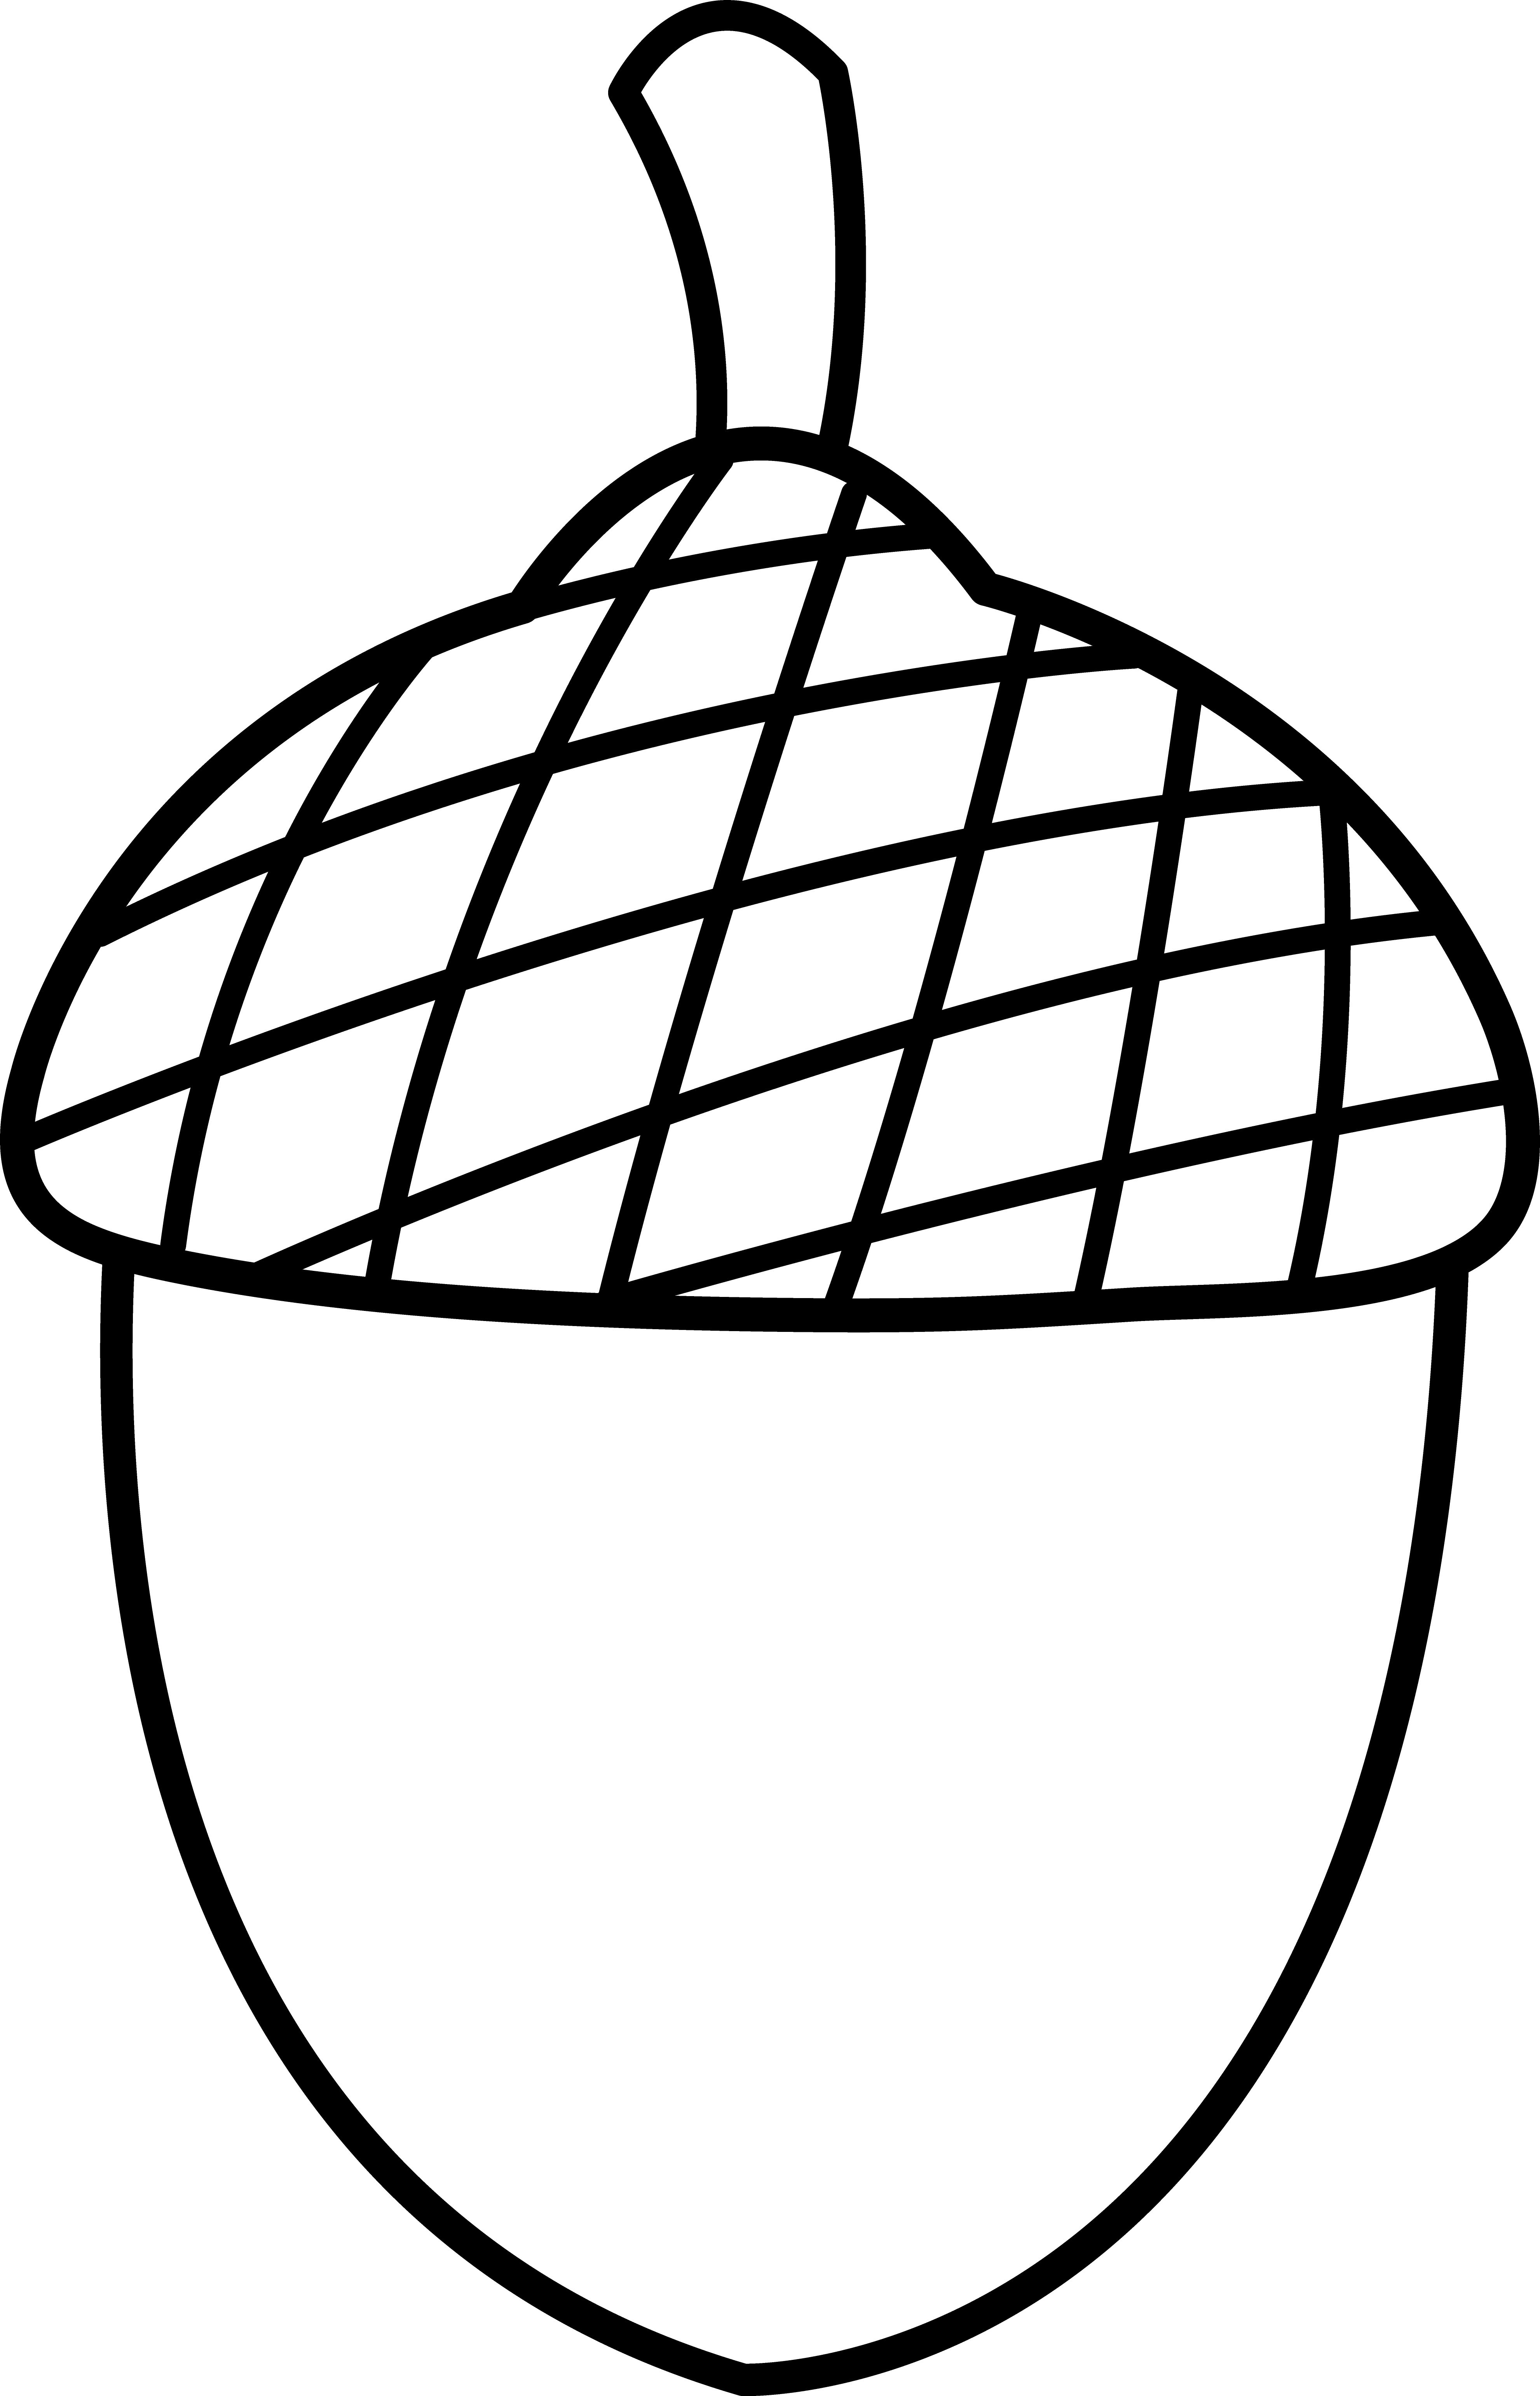 graphic freeuse library Acorn . Nuts clipart black and white